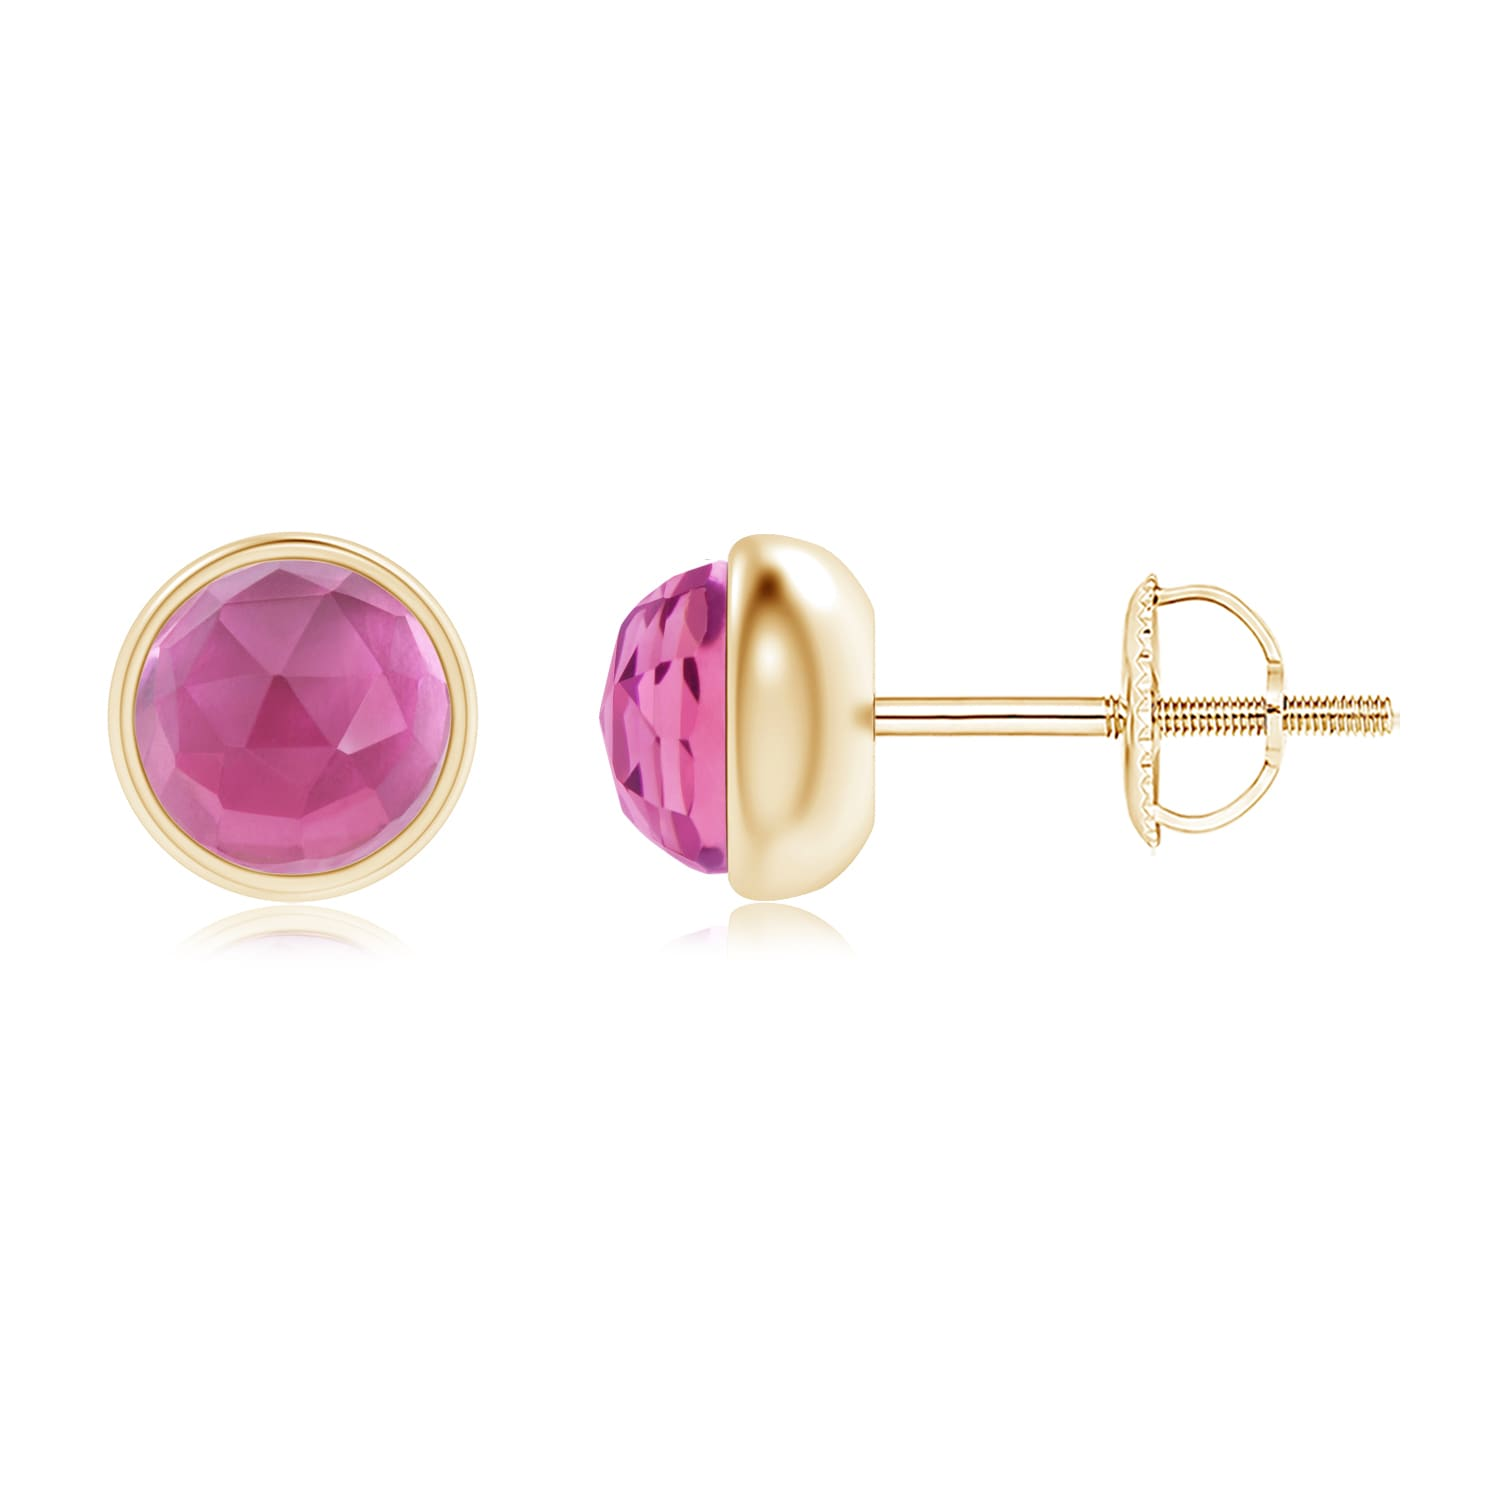 Angara Bezel Set Pink Tourmaline Solitaire Stud Earrings in Silver by Tourmaline Sets